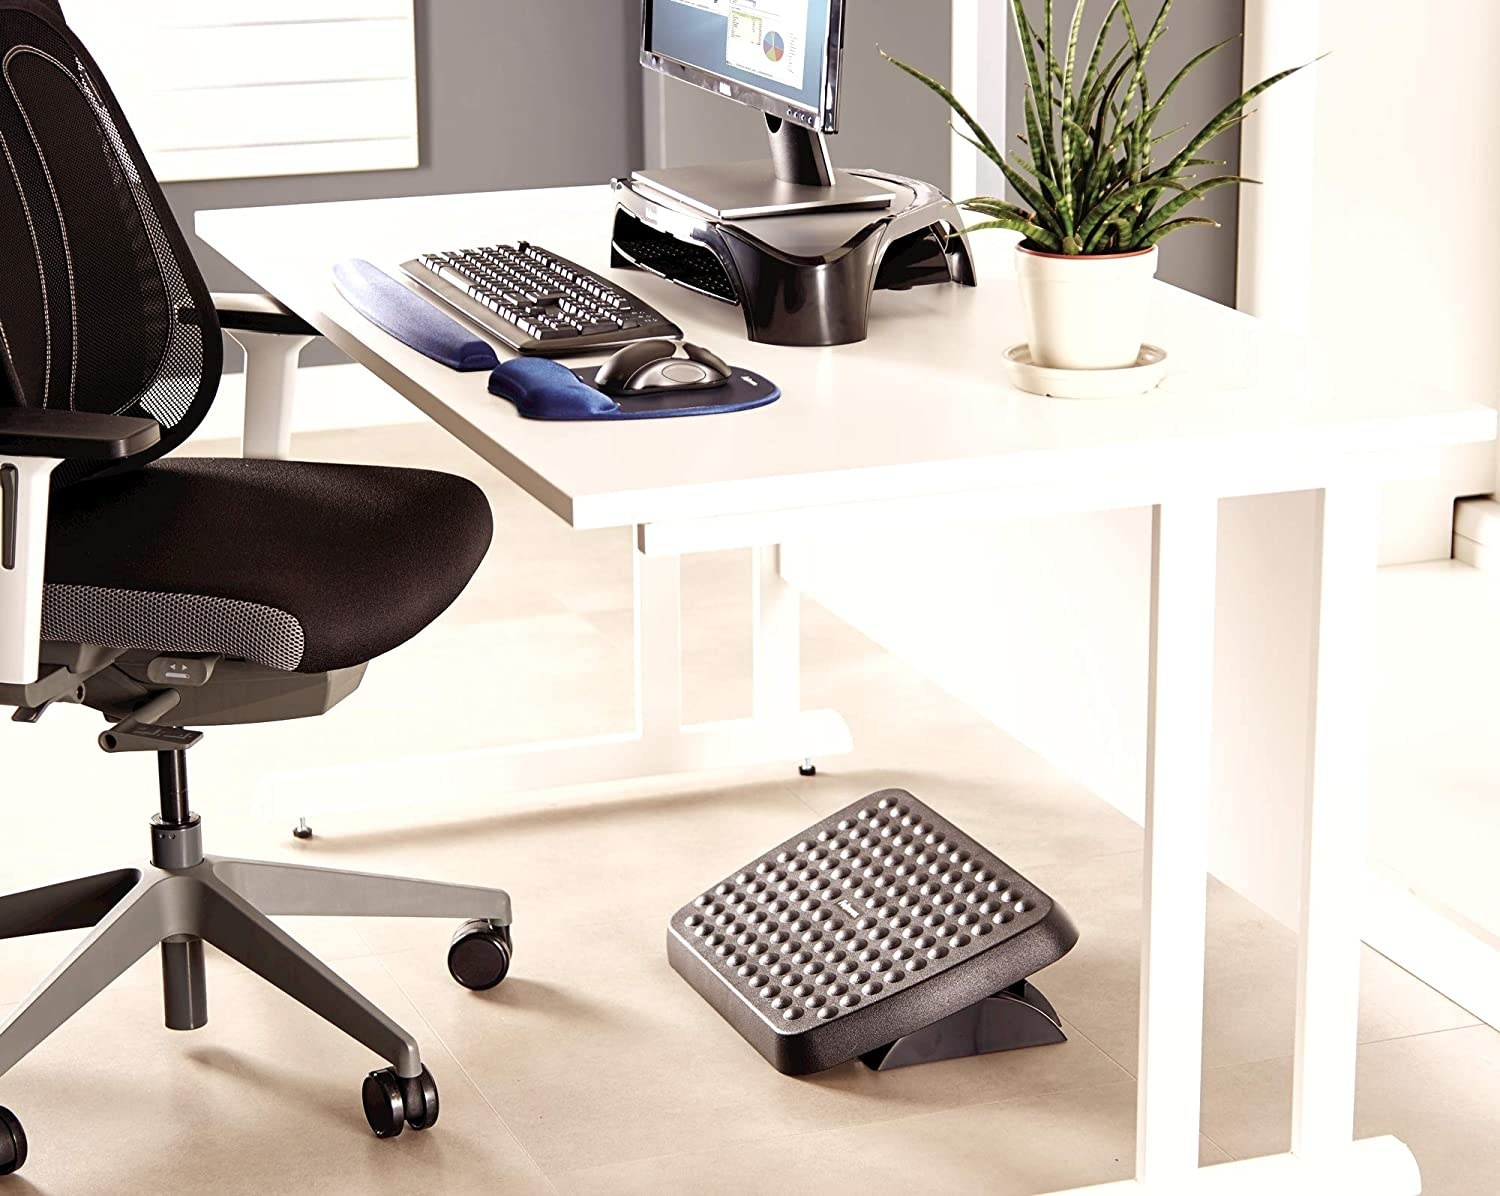 An angled foot rest under a desk with office equipment